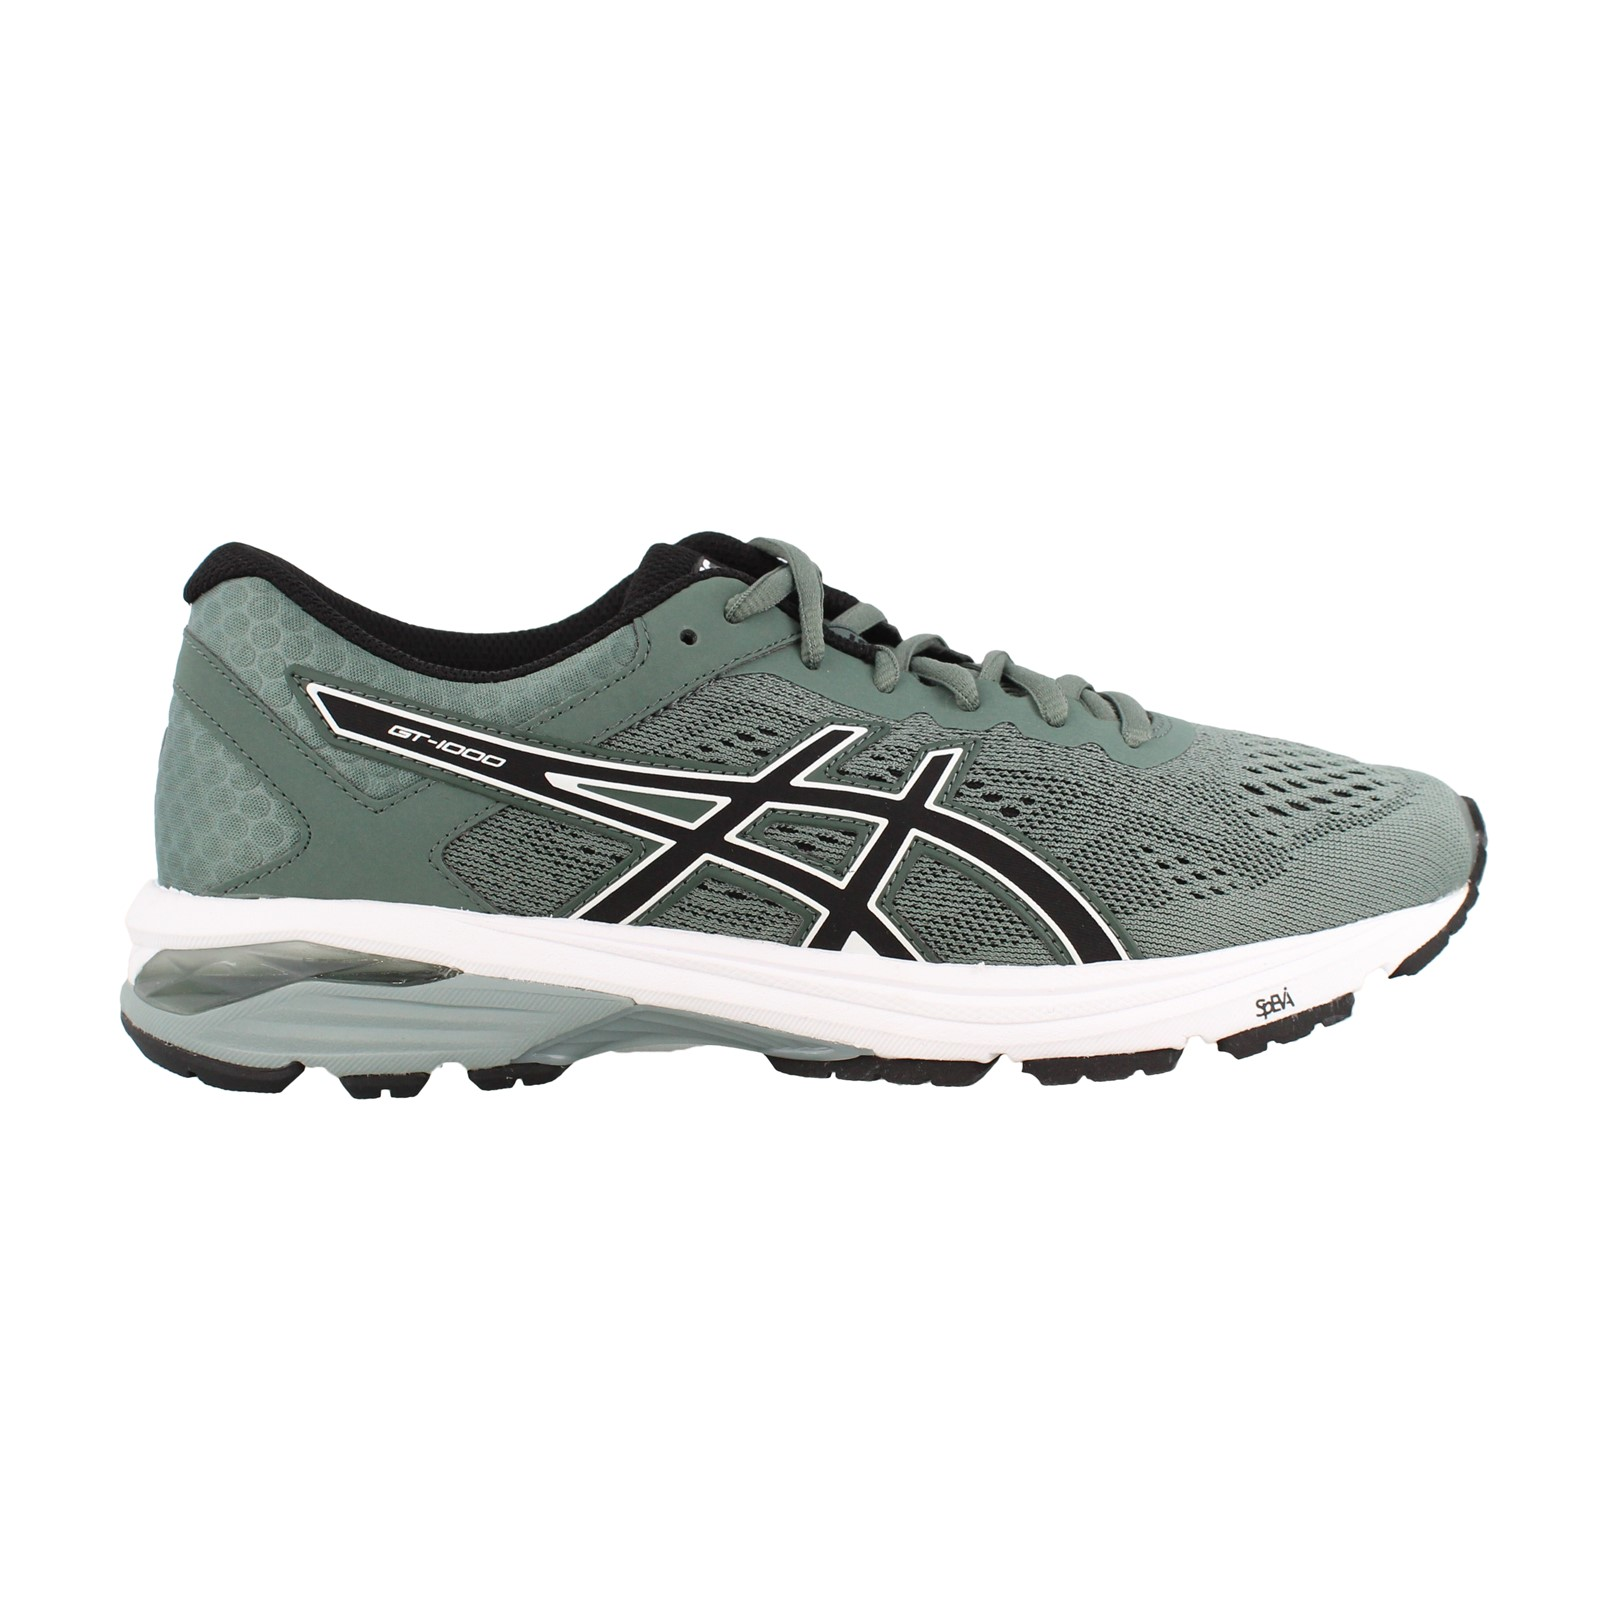 Men's Asics, GT 1000 6 Running Sneakers